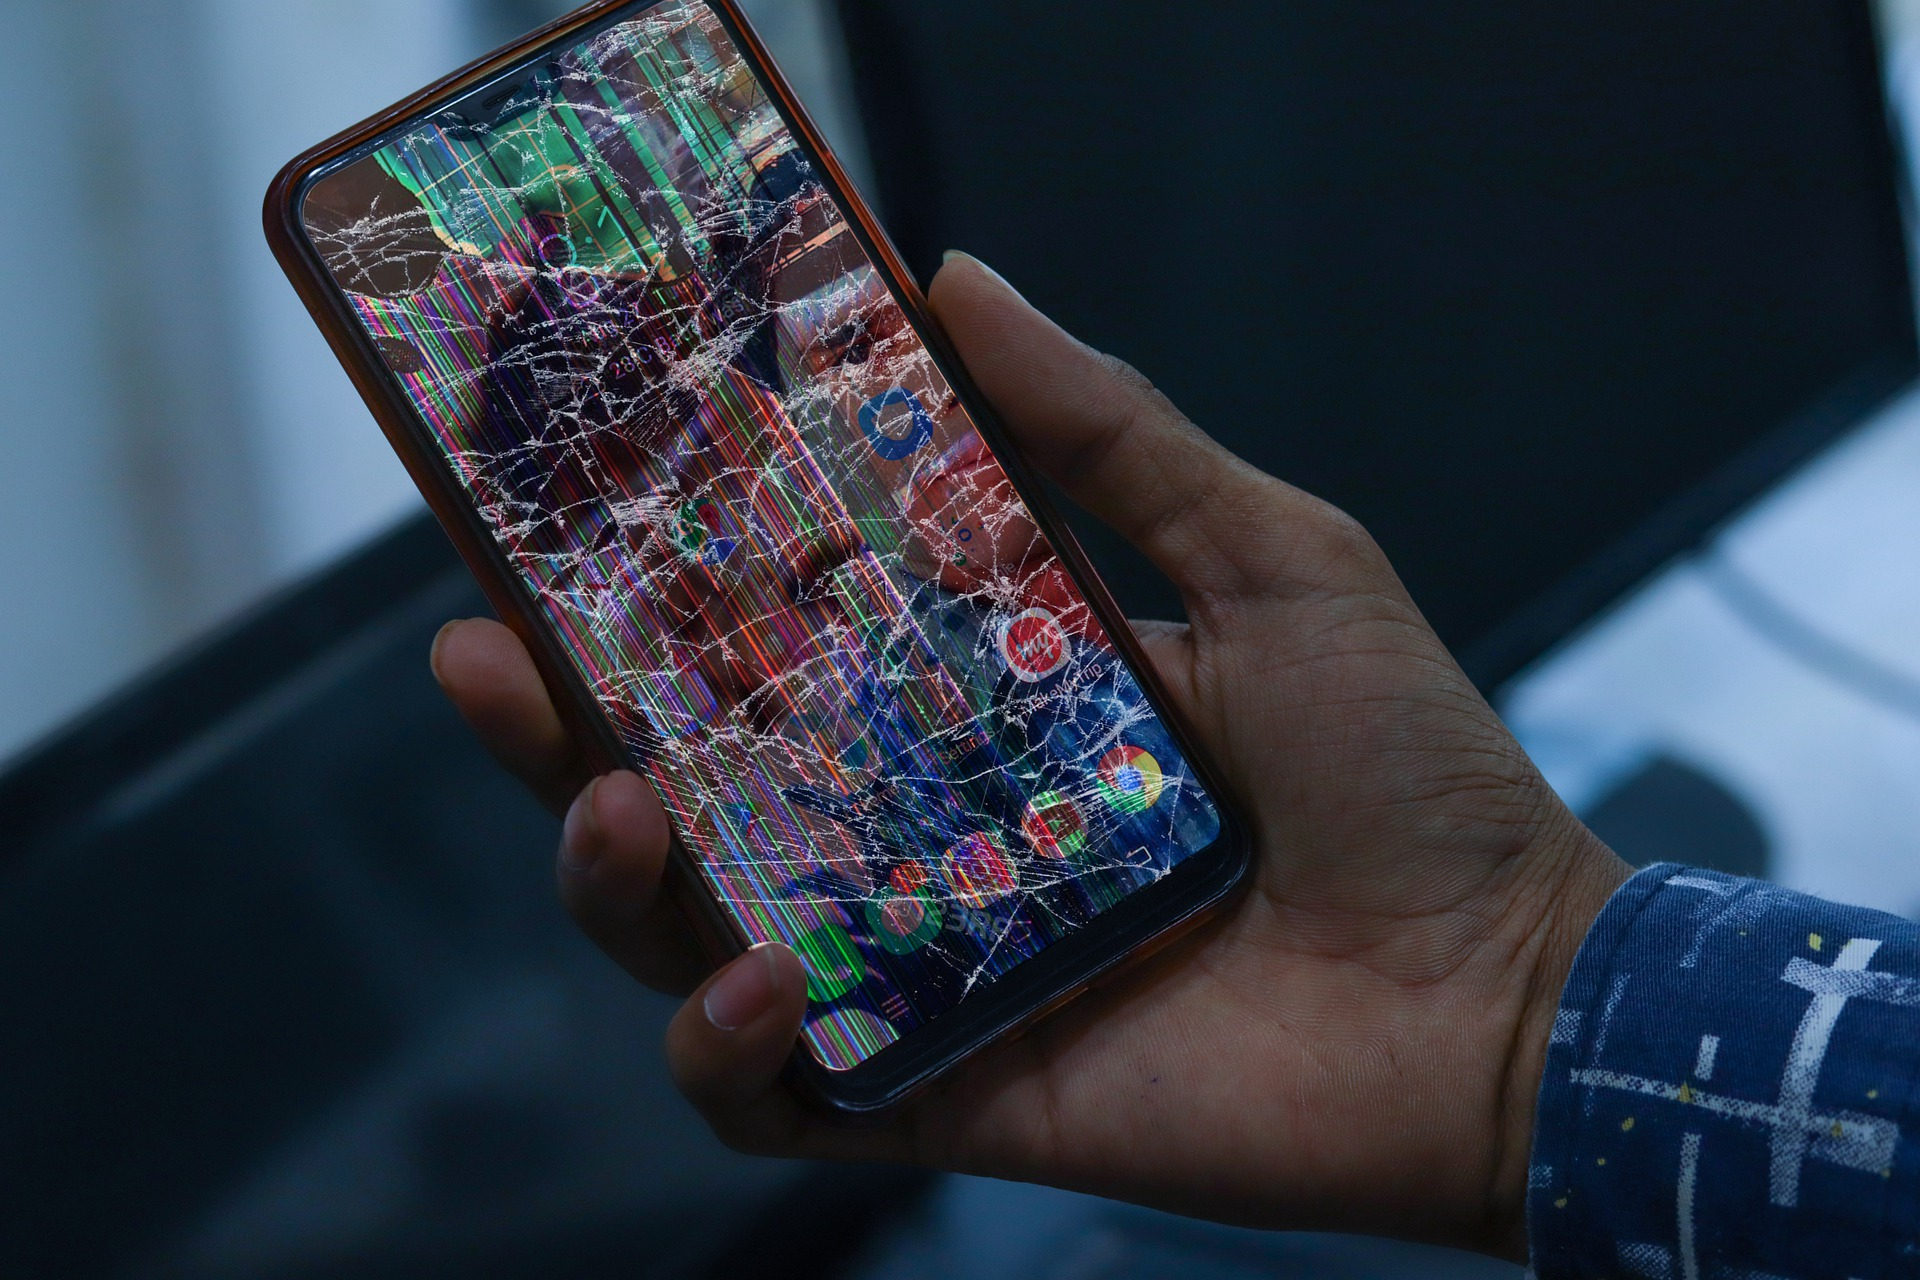 How To Recover Data From A Device With A Broken Screen